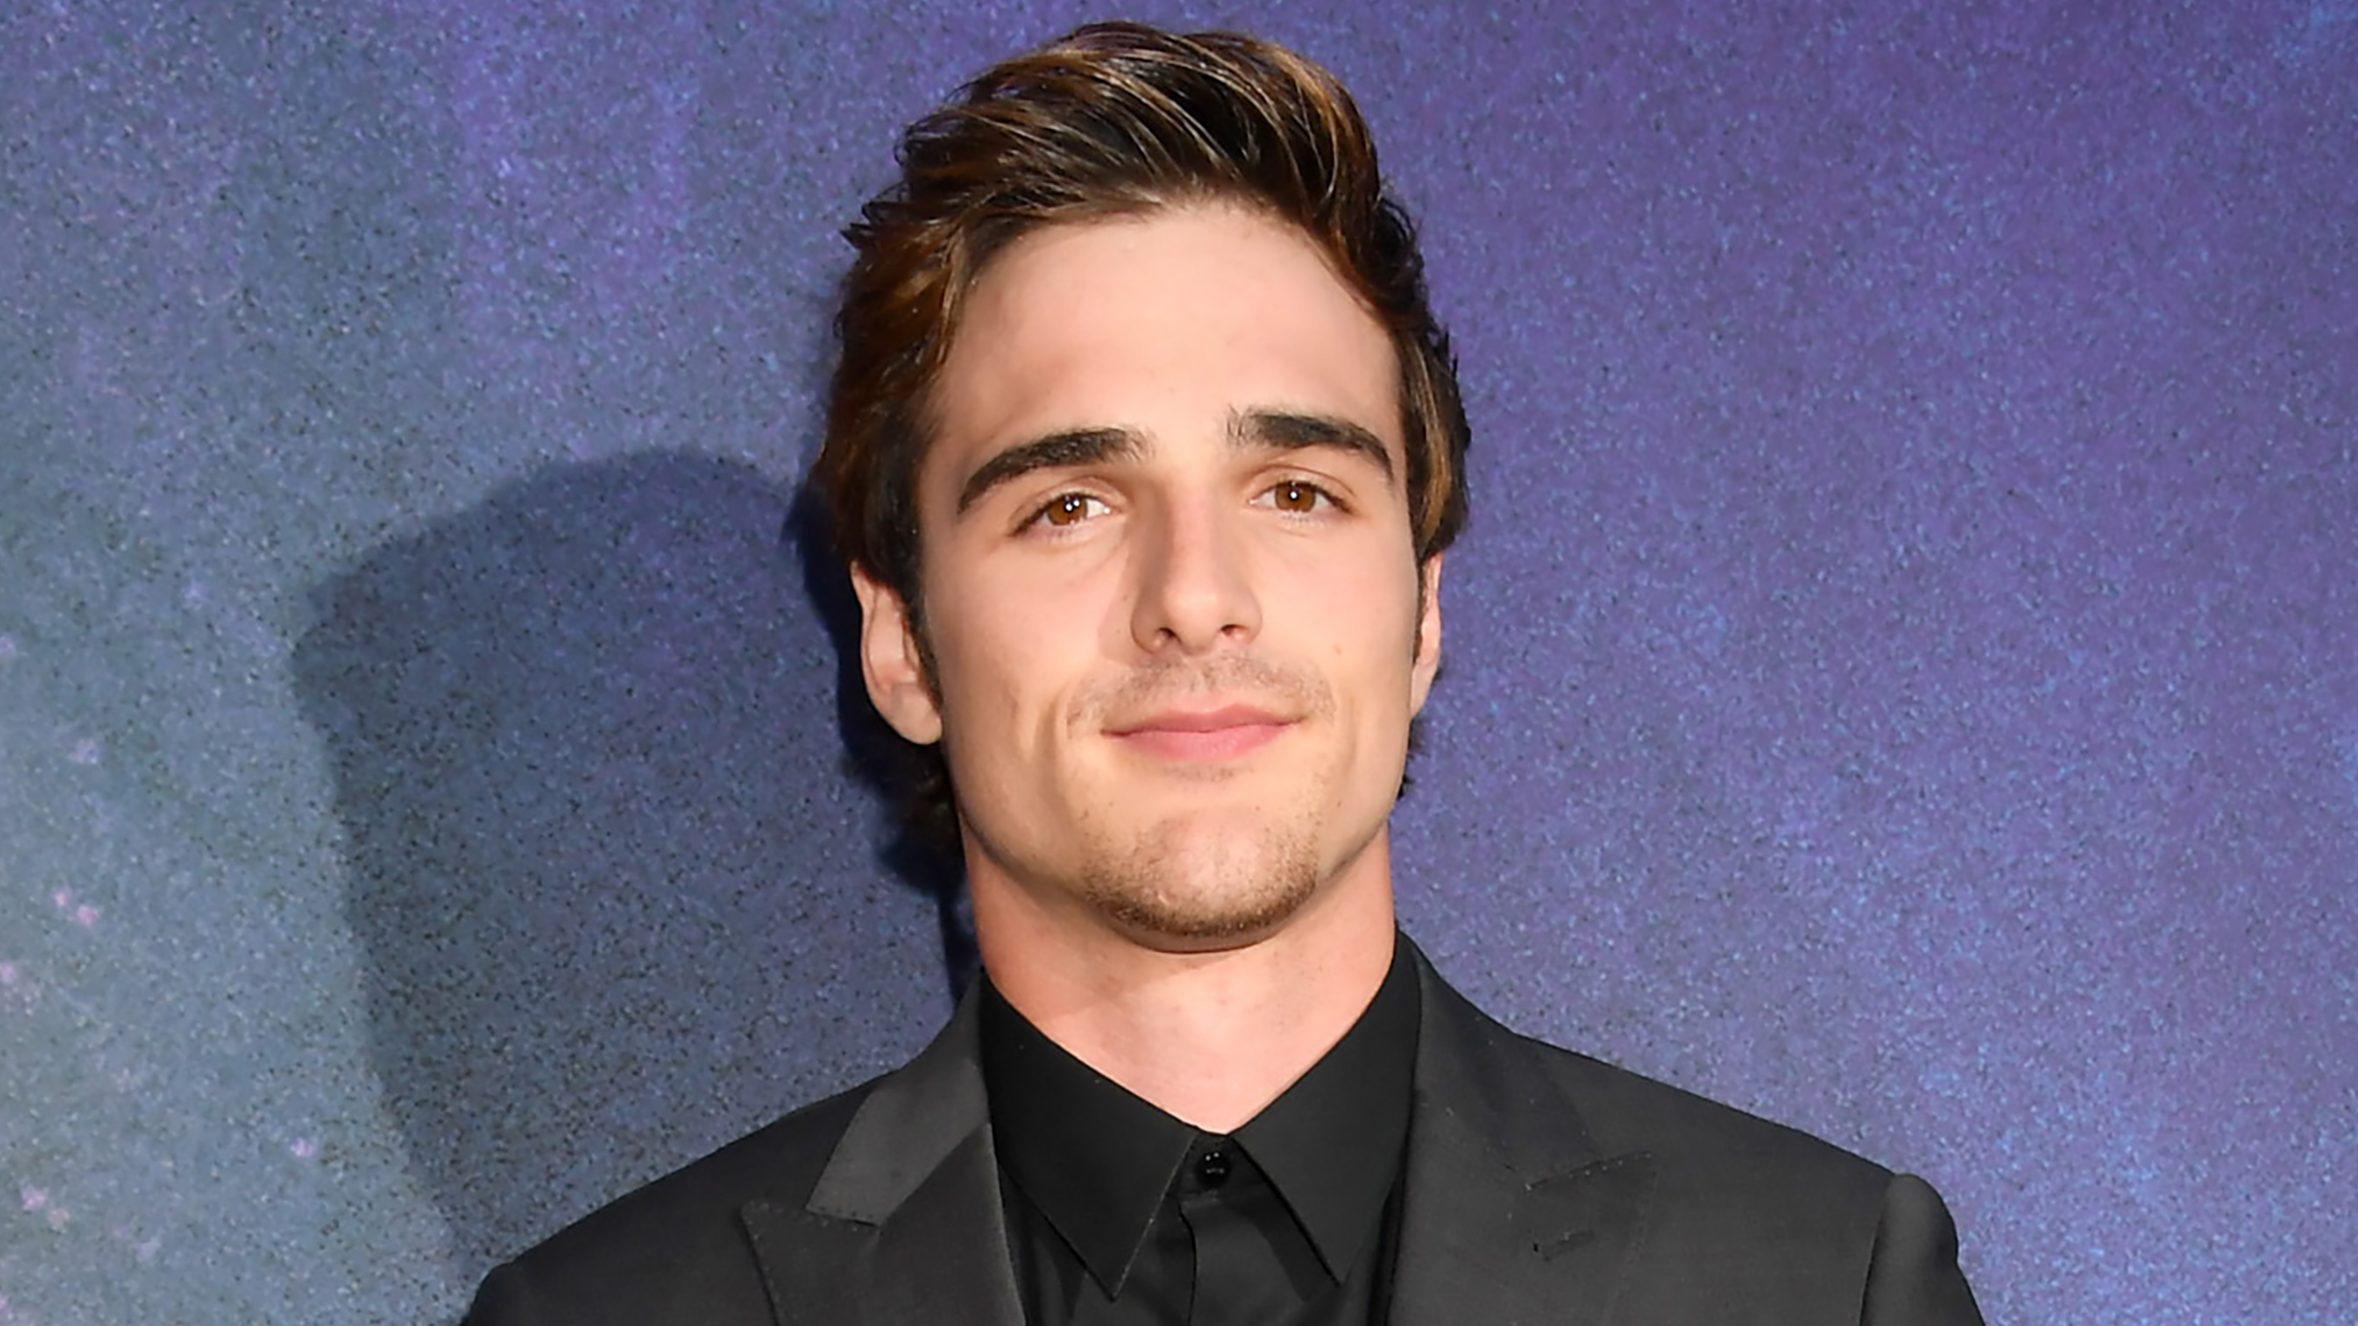 Jacob Elordi To Star In Legendary Action Thriller 'Parallel'